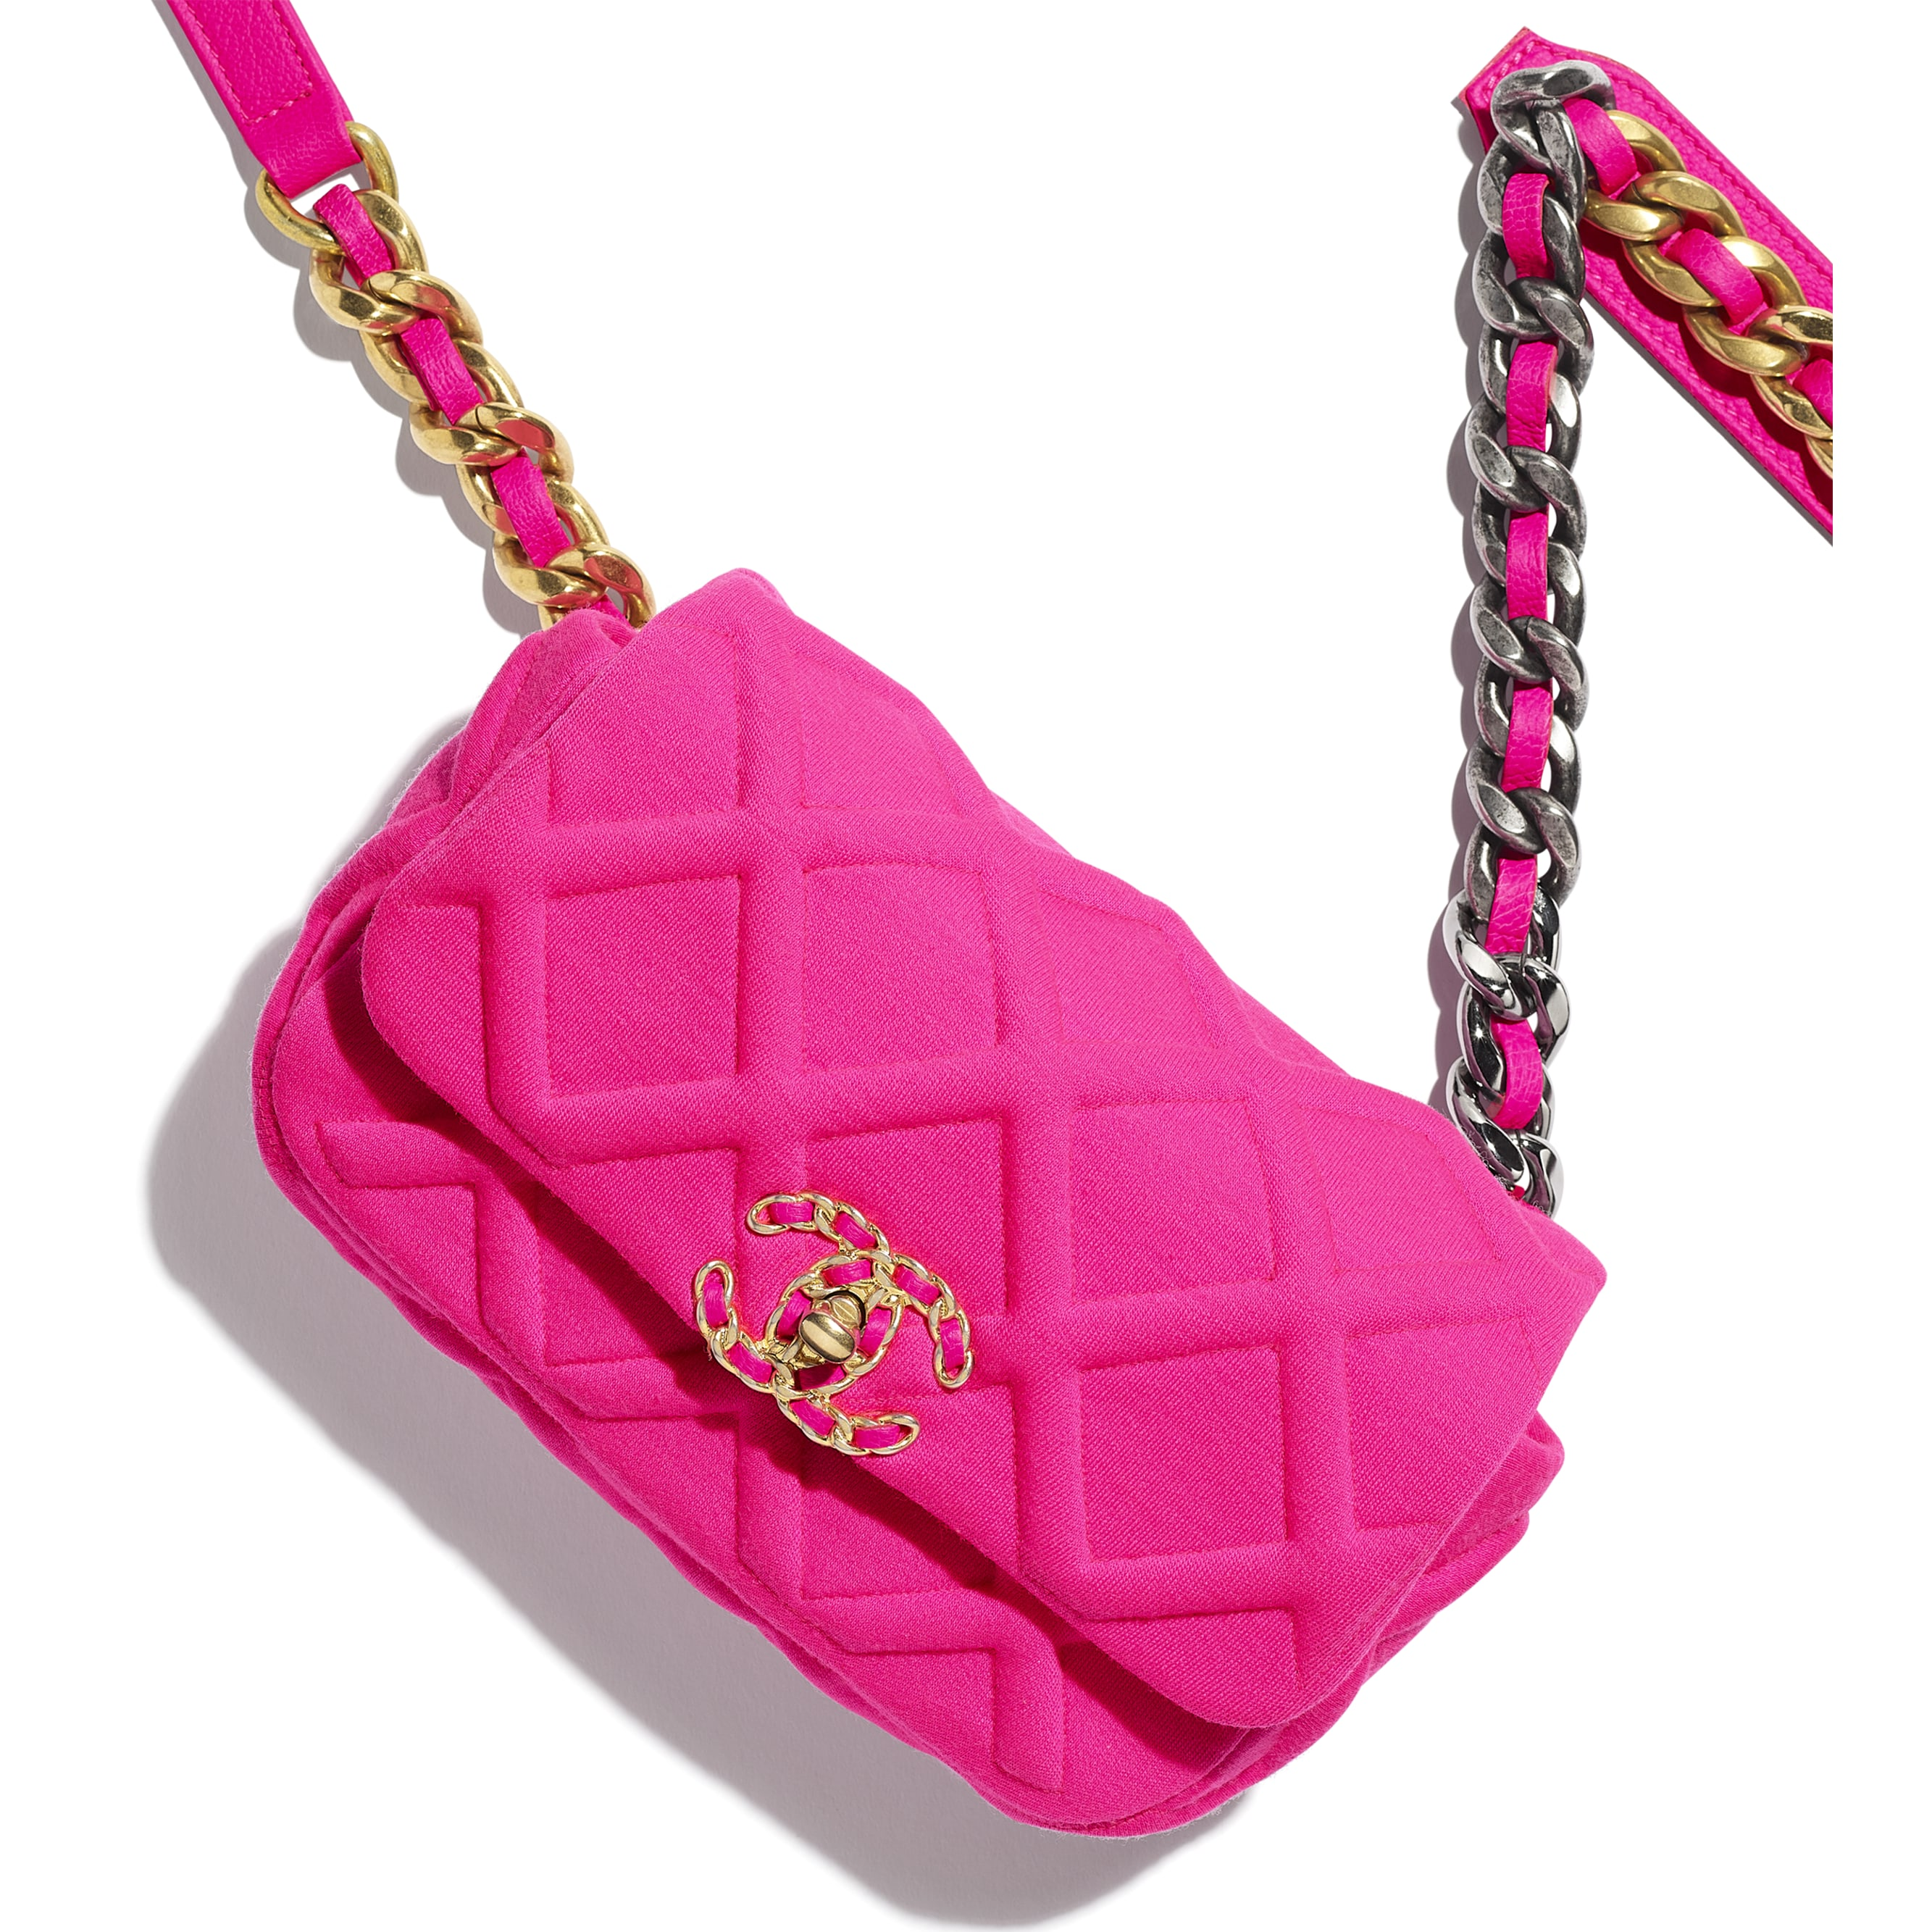 CHANEL 19 Waist Bag - Fuchsia - Jersey, Gold-Tone, Silver-Tone & Ruthenium-Finish Metal - Extra view - see standard sized version